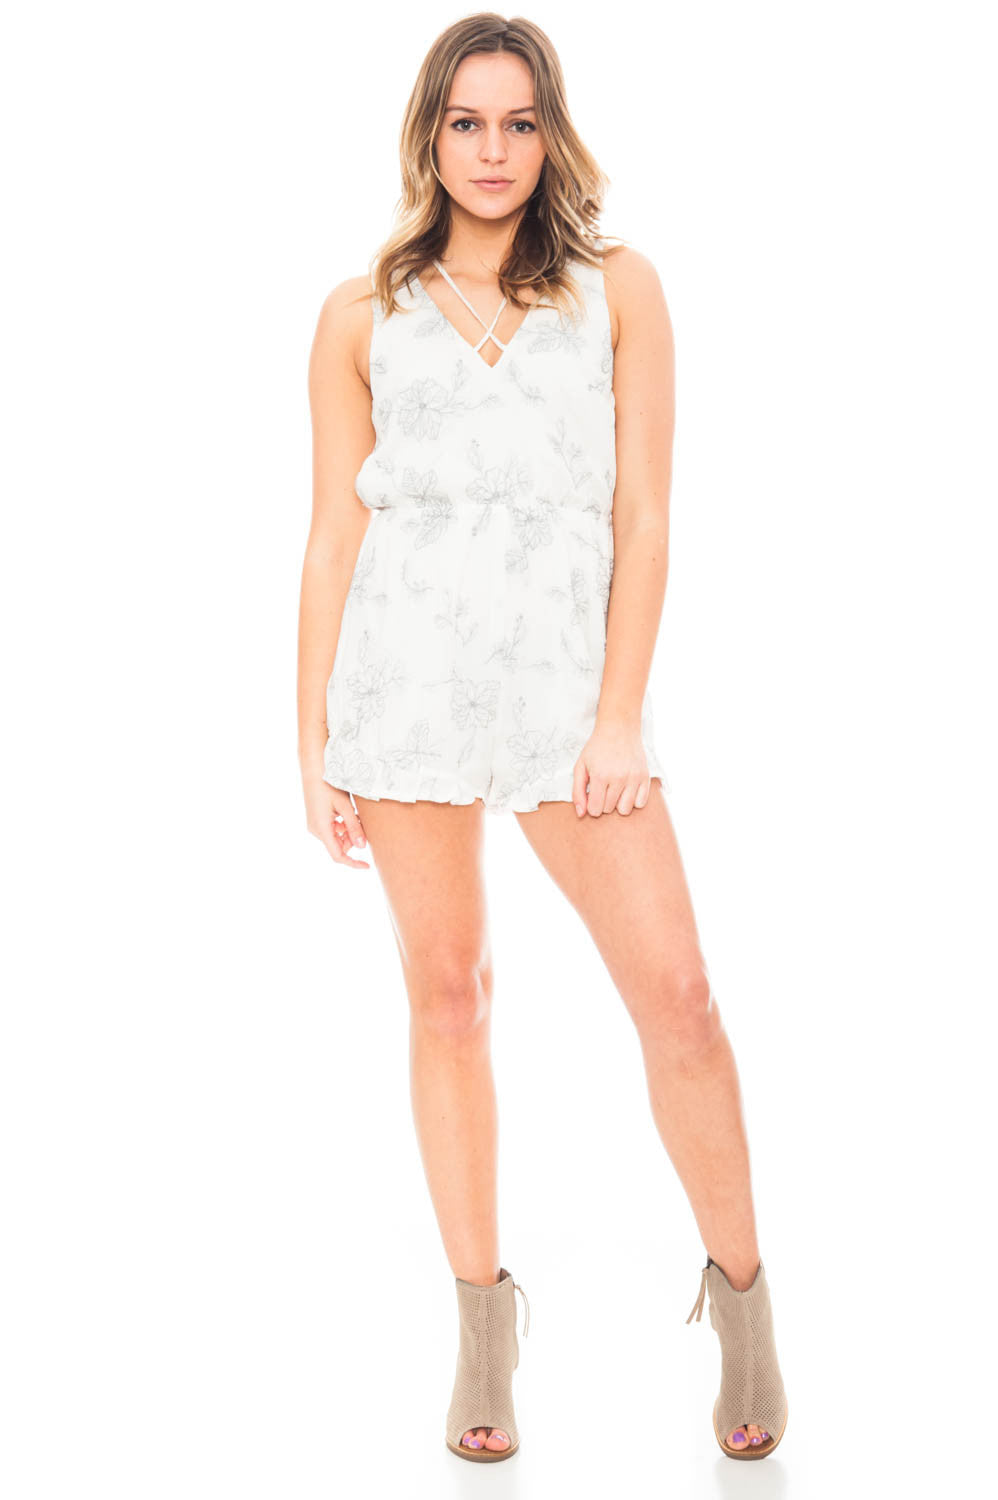 Romper - Sweet Love Romper with Floral Embroidery and Ruffle Detail by Lush